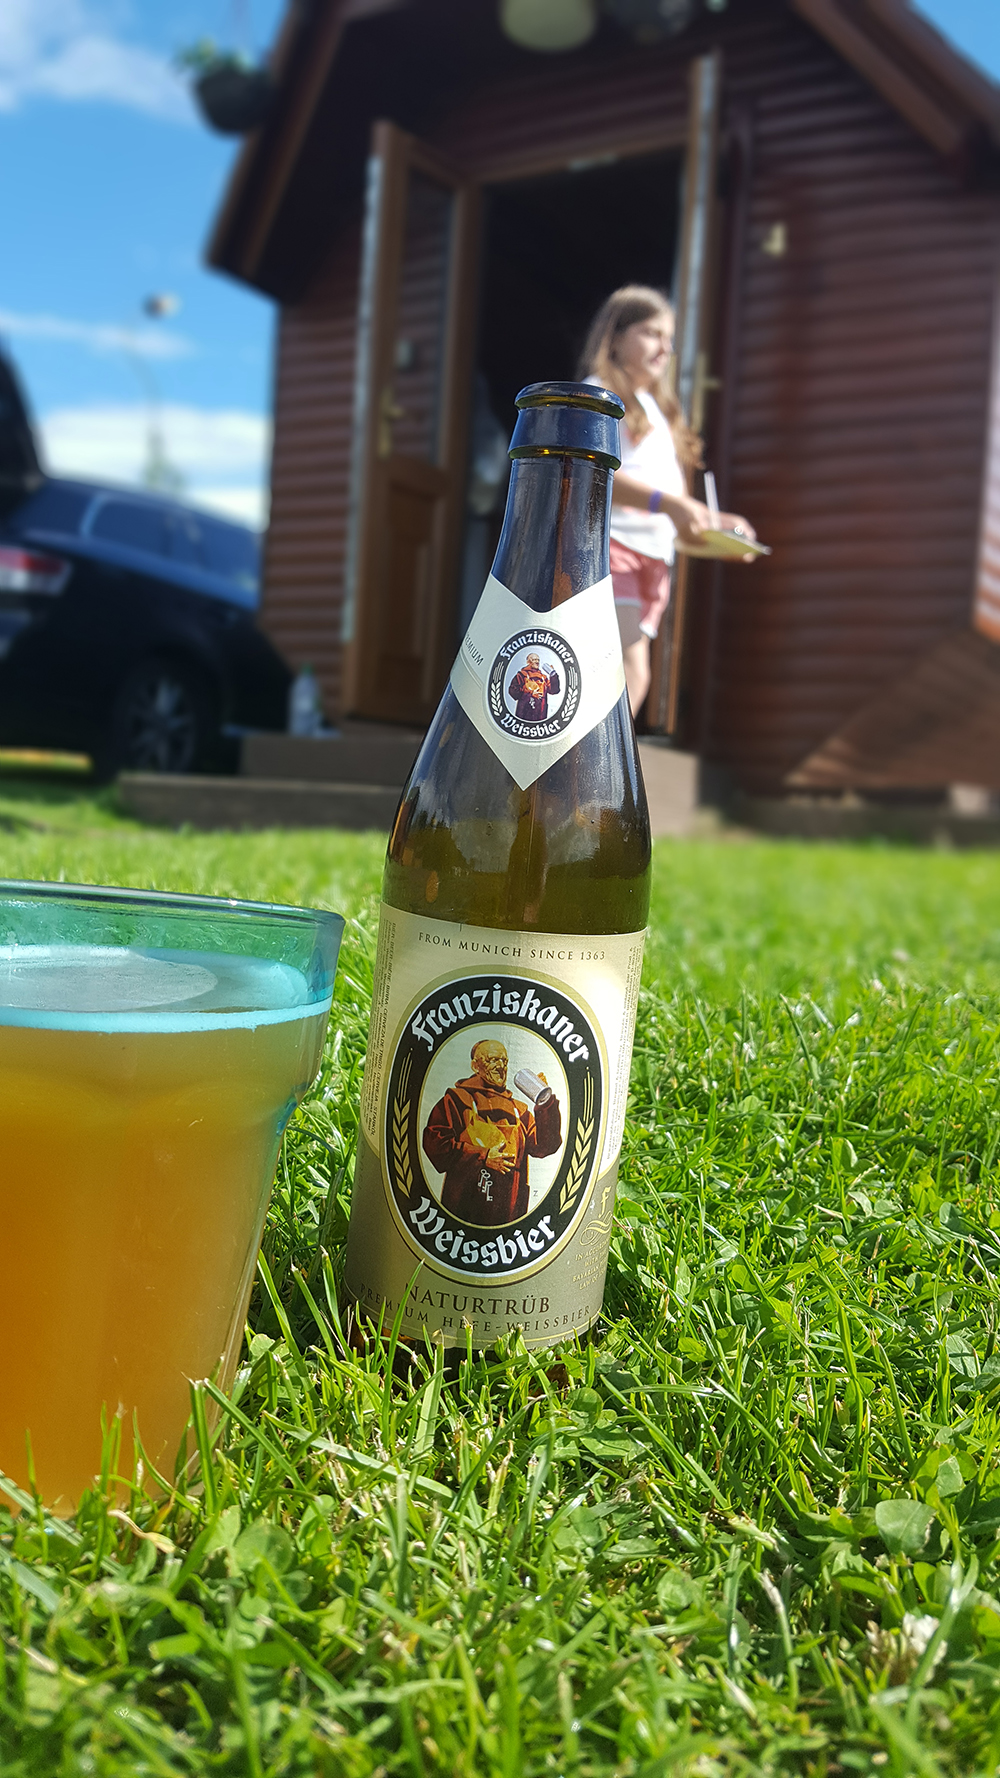 A well deserved cold lager